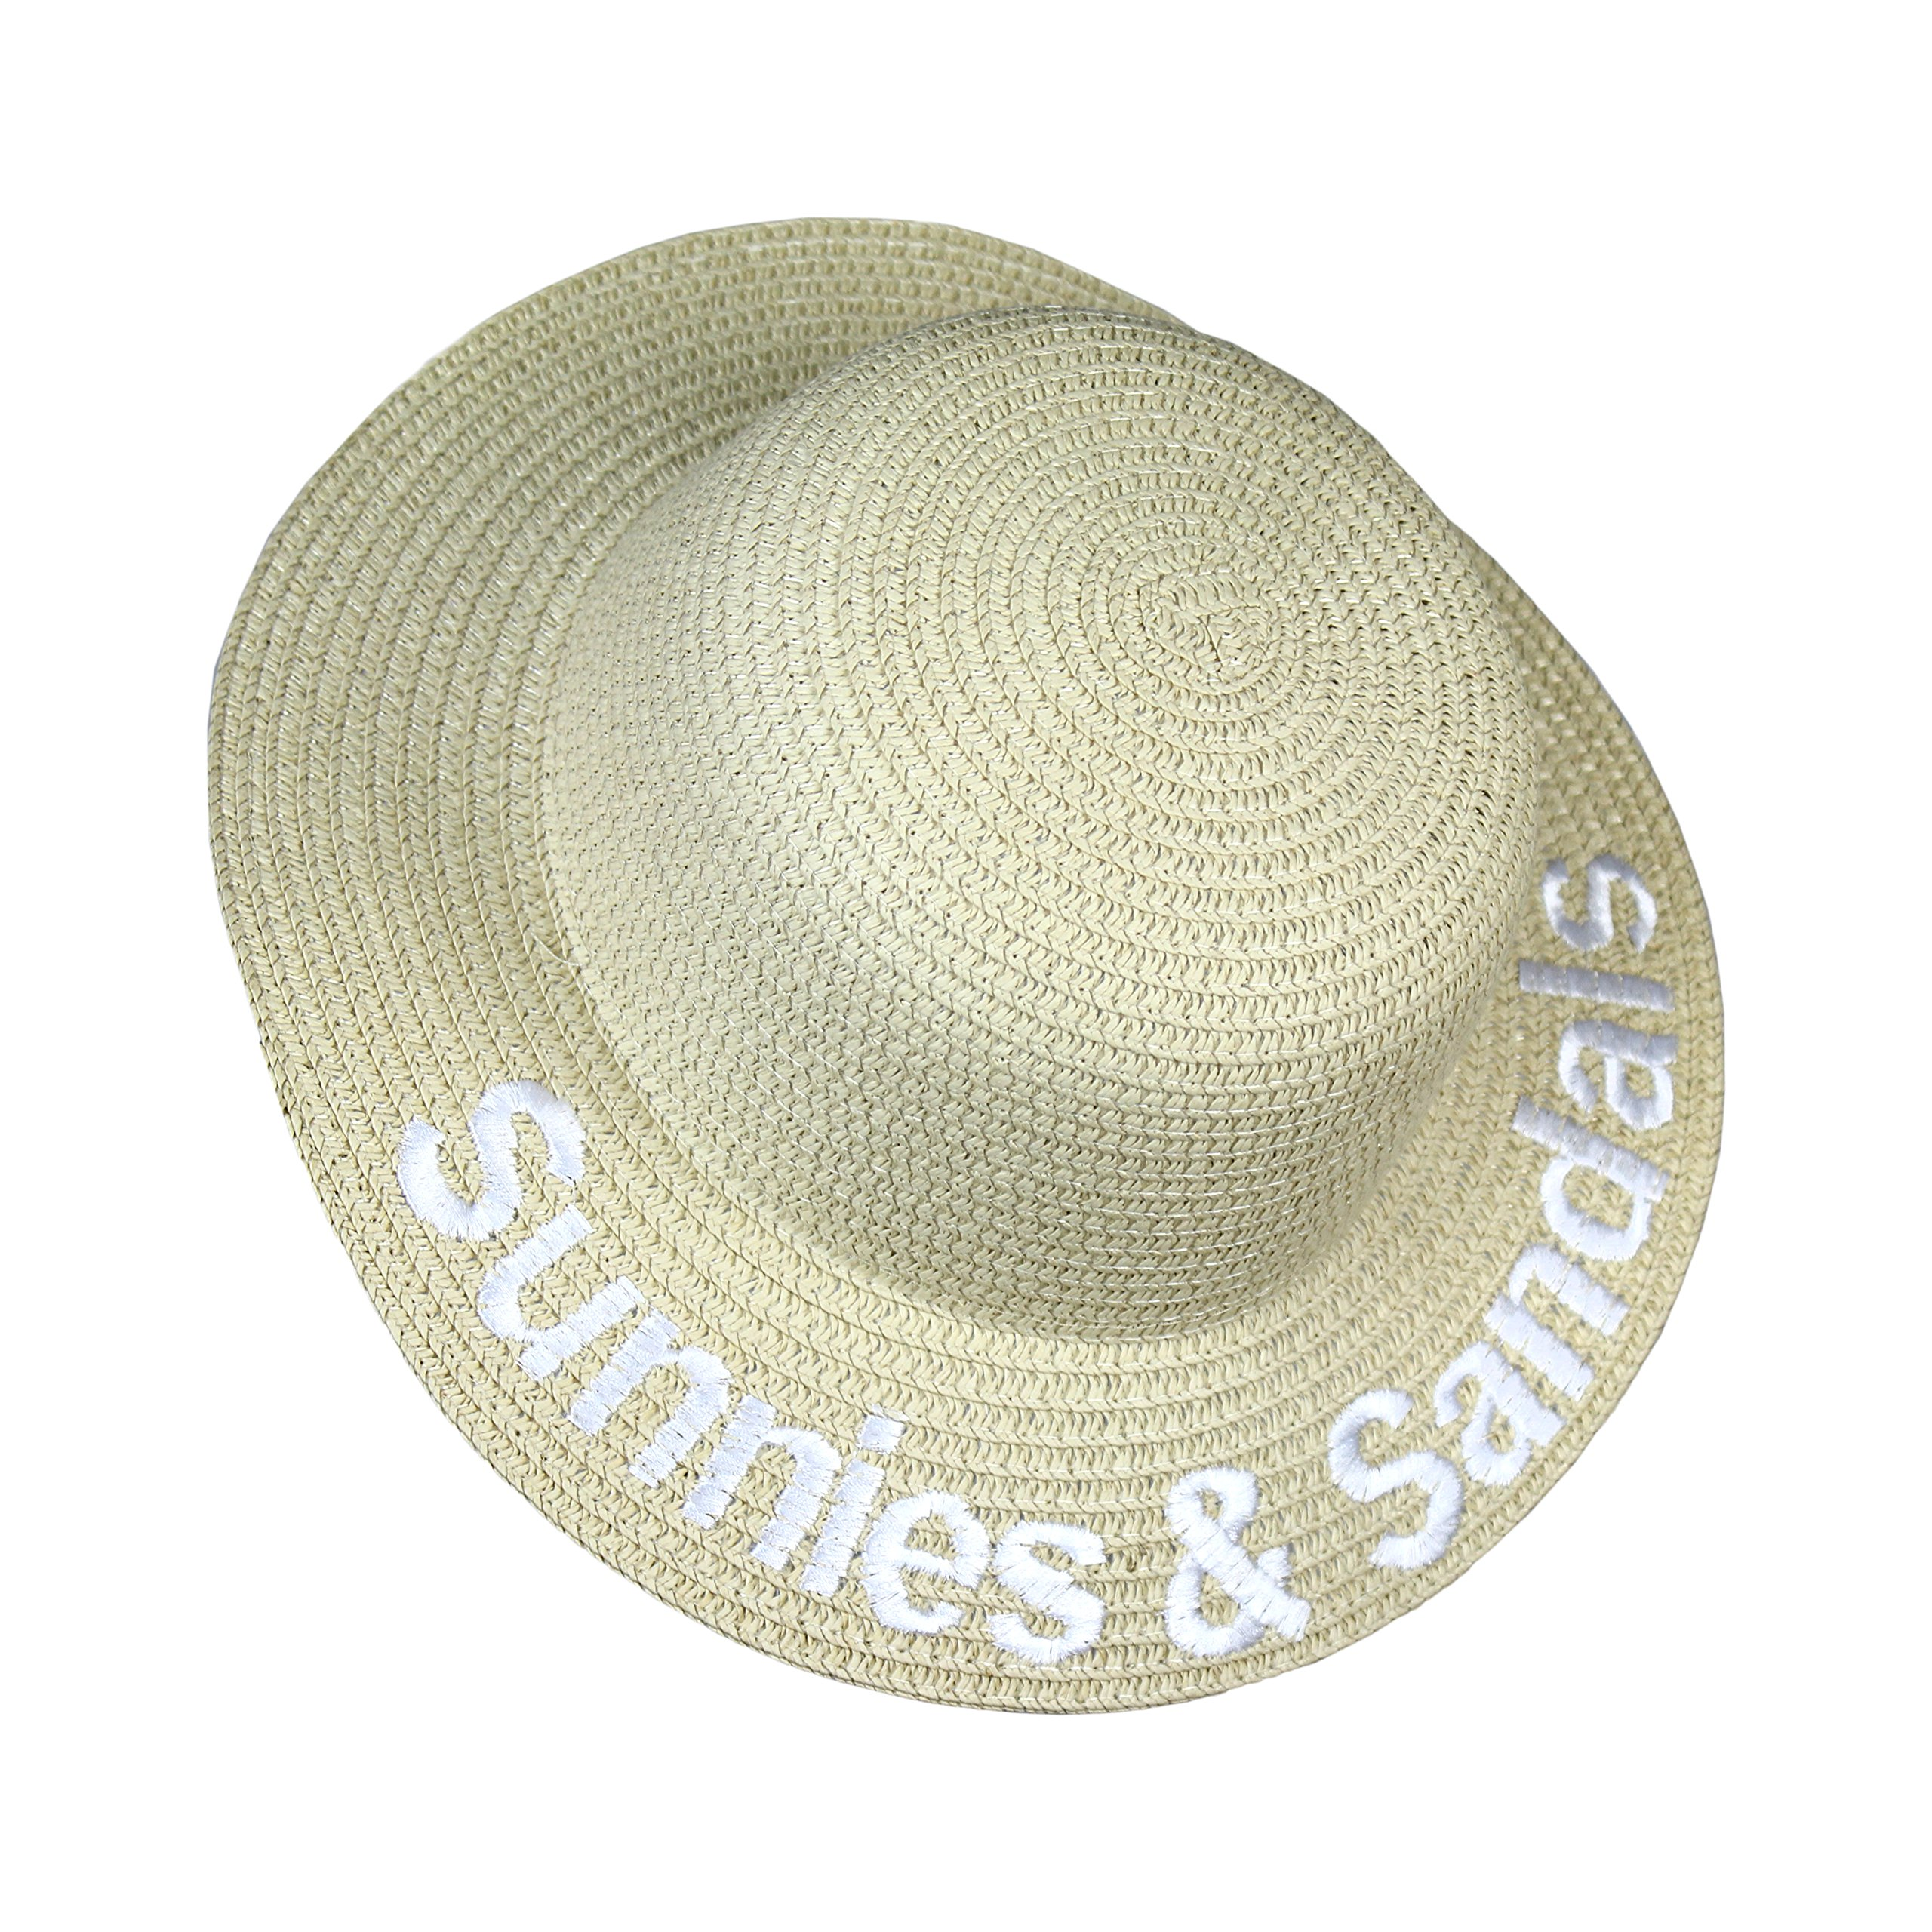 Sunnies and Sandals Verbiage Girls Boho Straw Summer Beach Hat- Wide Brim Sun Protection Cap for Kids (Sunnies & Sandals)